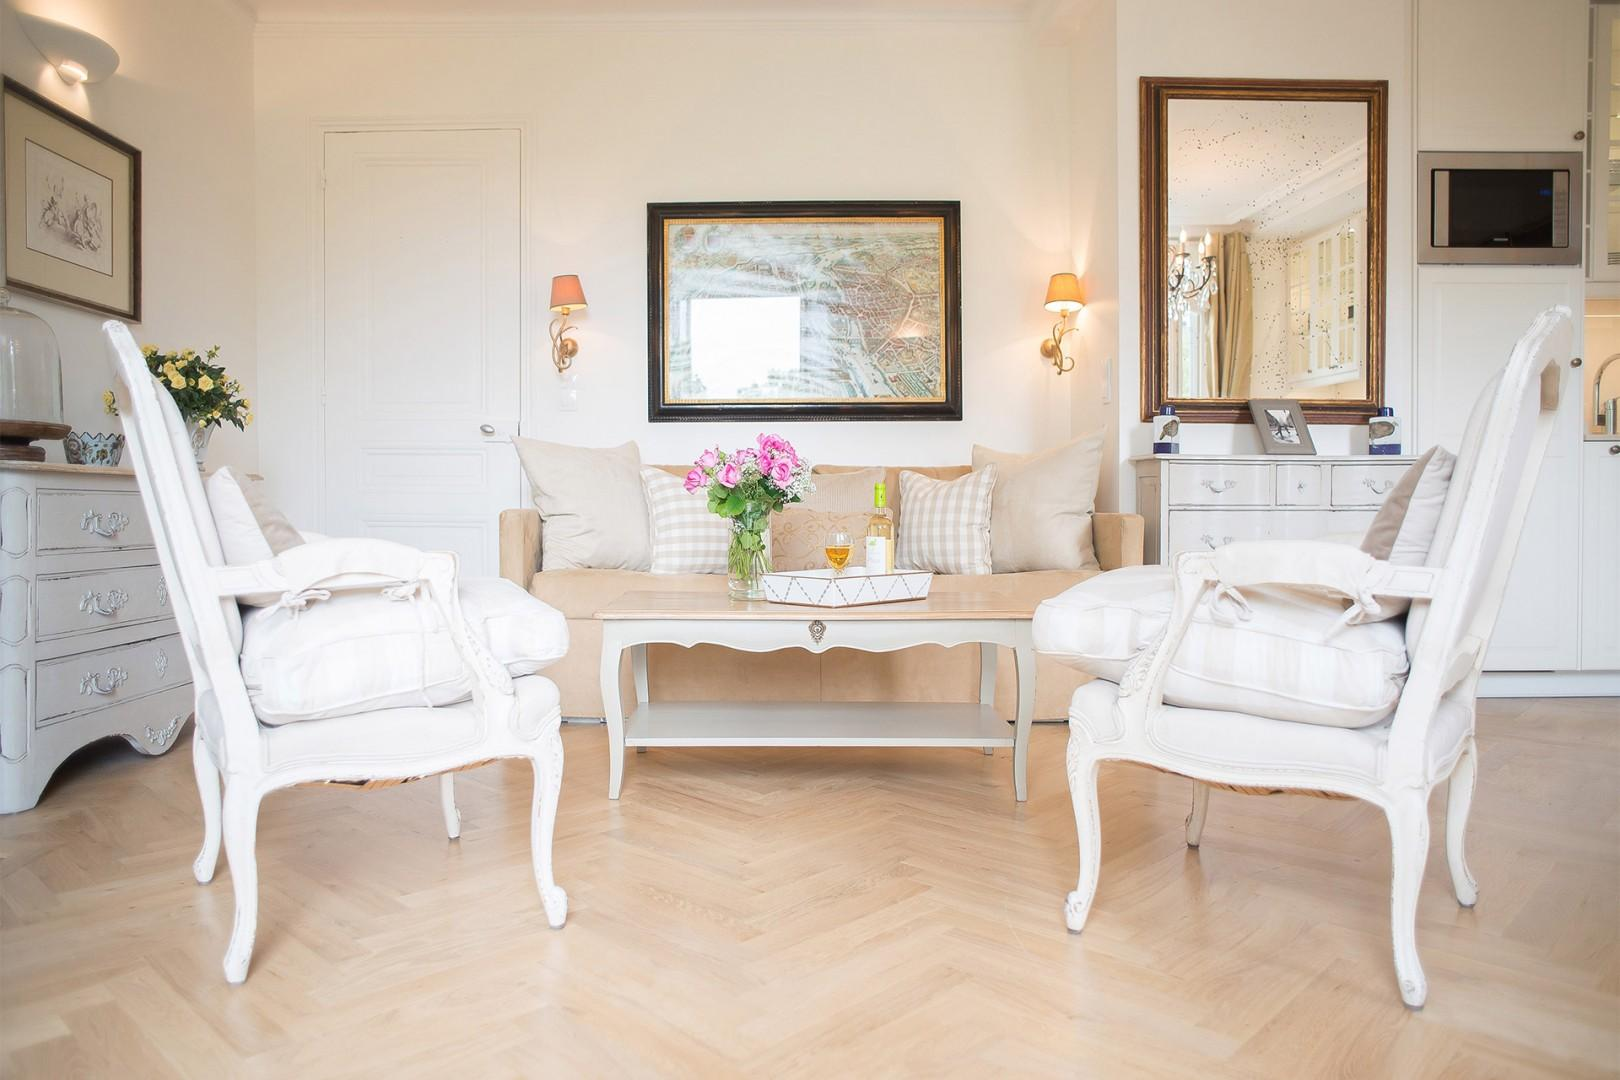 Relax after a long day of exploring Paris in your very own stylish apartment.